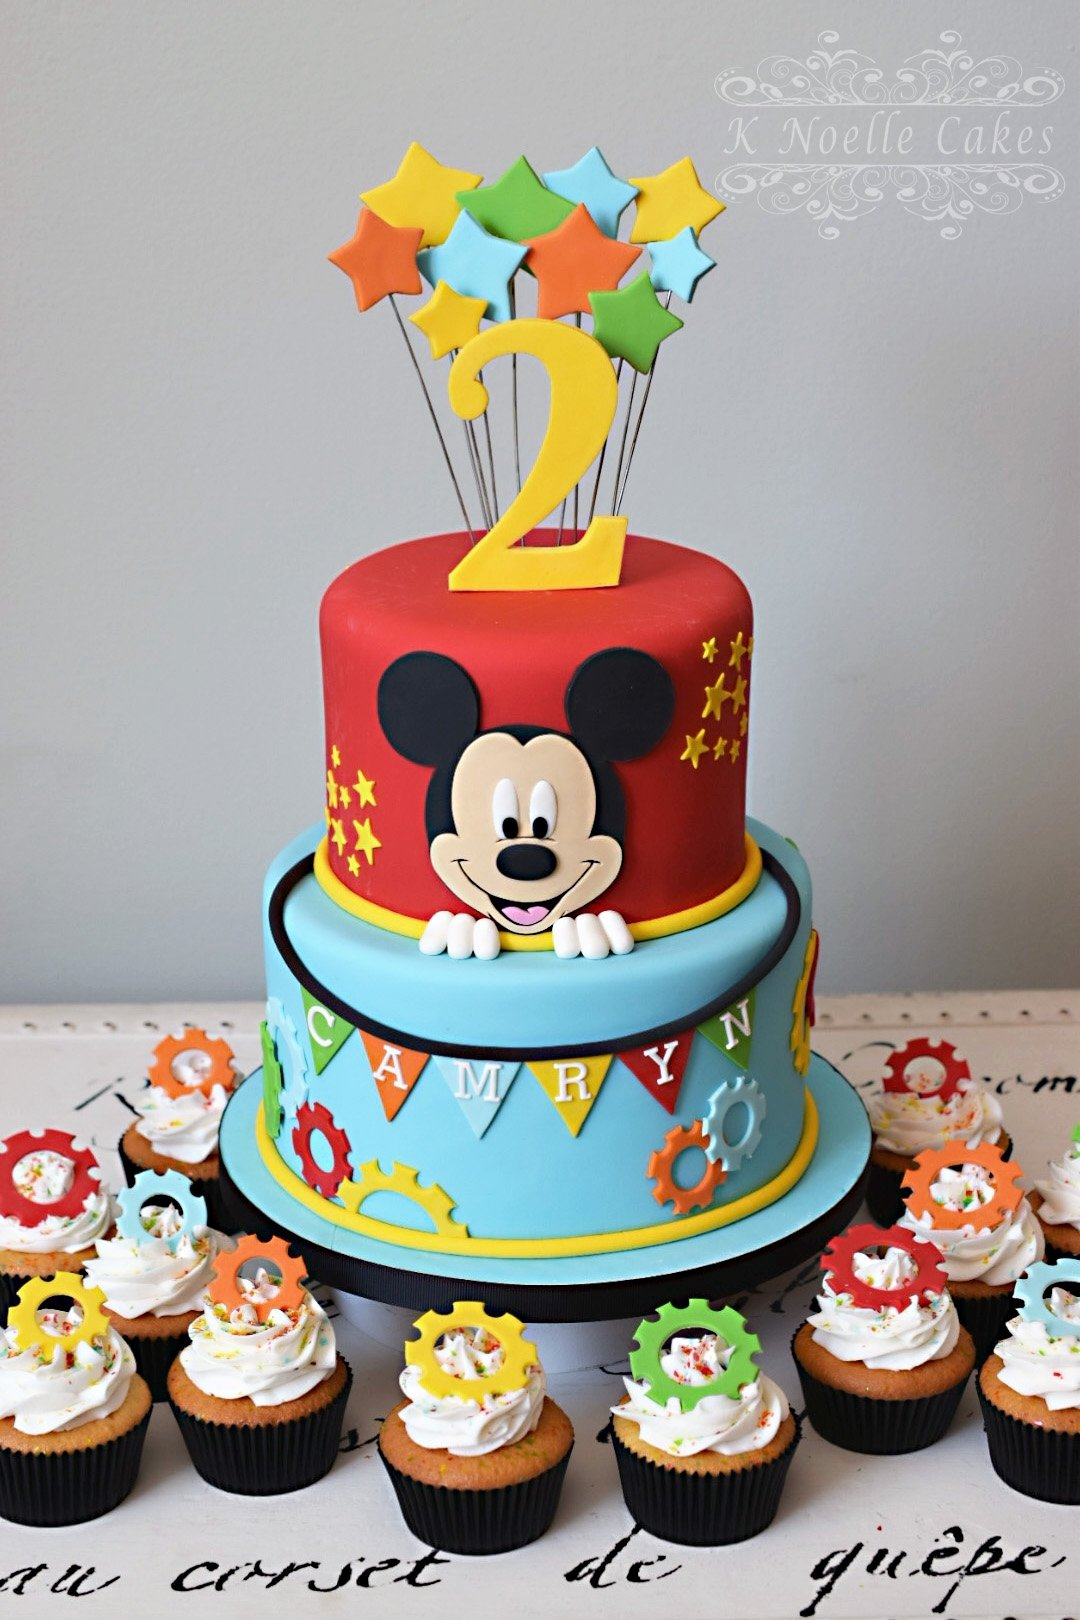 10 Perfect Mickey Mouse Party Ideas For One Year Old mickey mouse clubhouse theme cakek noelle cakes cakes by k 4 2021